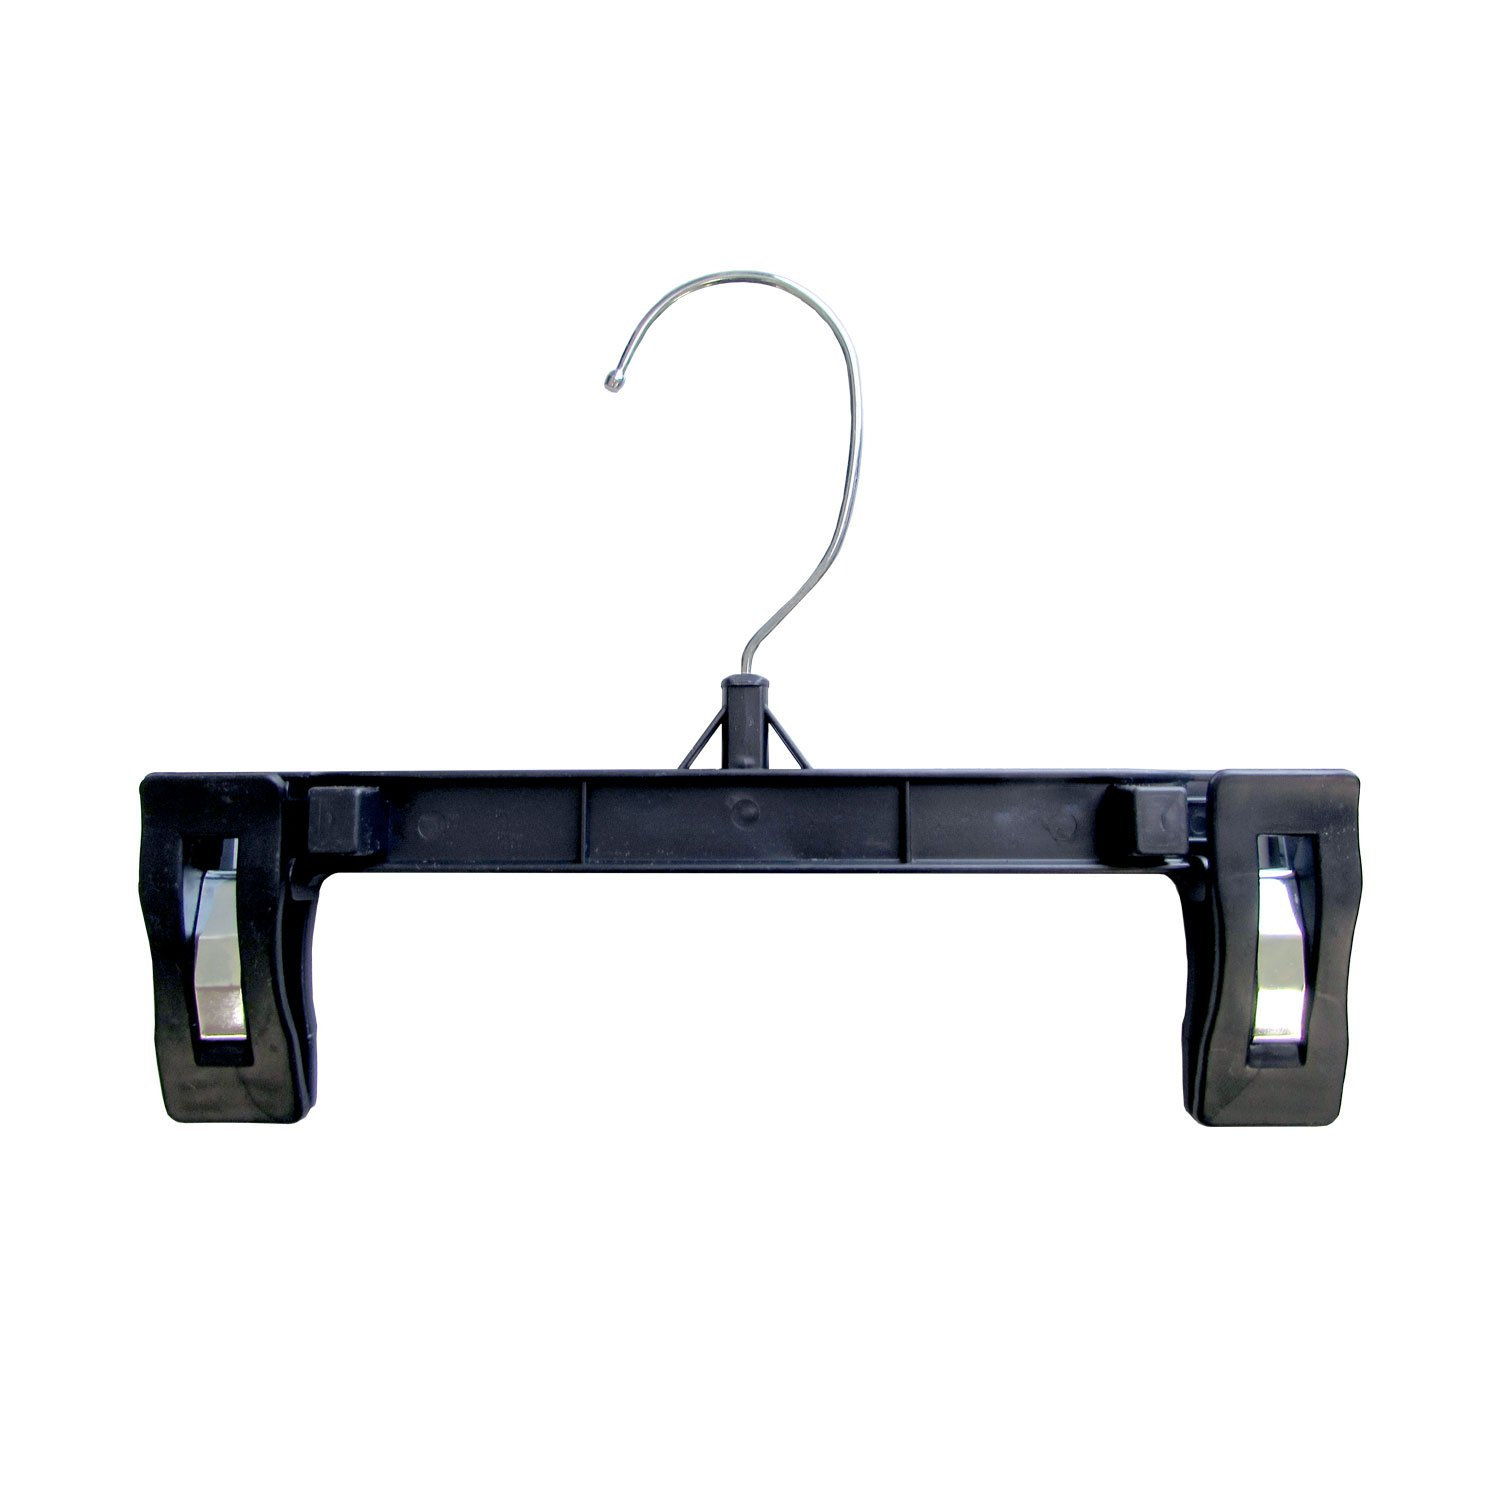 Hanger Central Recycled Heavy Duty Plastic Bottoms Hangers with Ridged Pinch Clips Pants Hangers, 8 inch, Black, 50 Pack R6008B-50